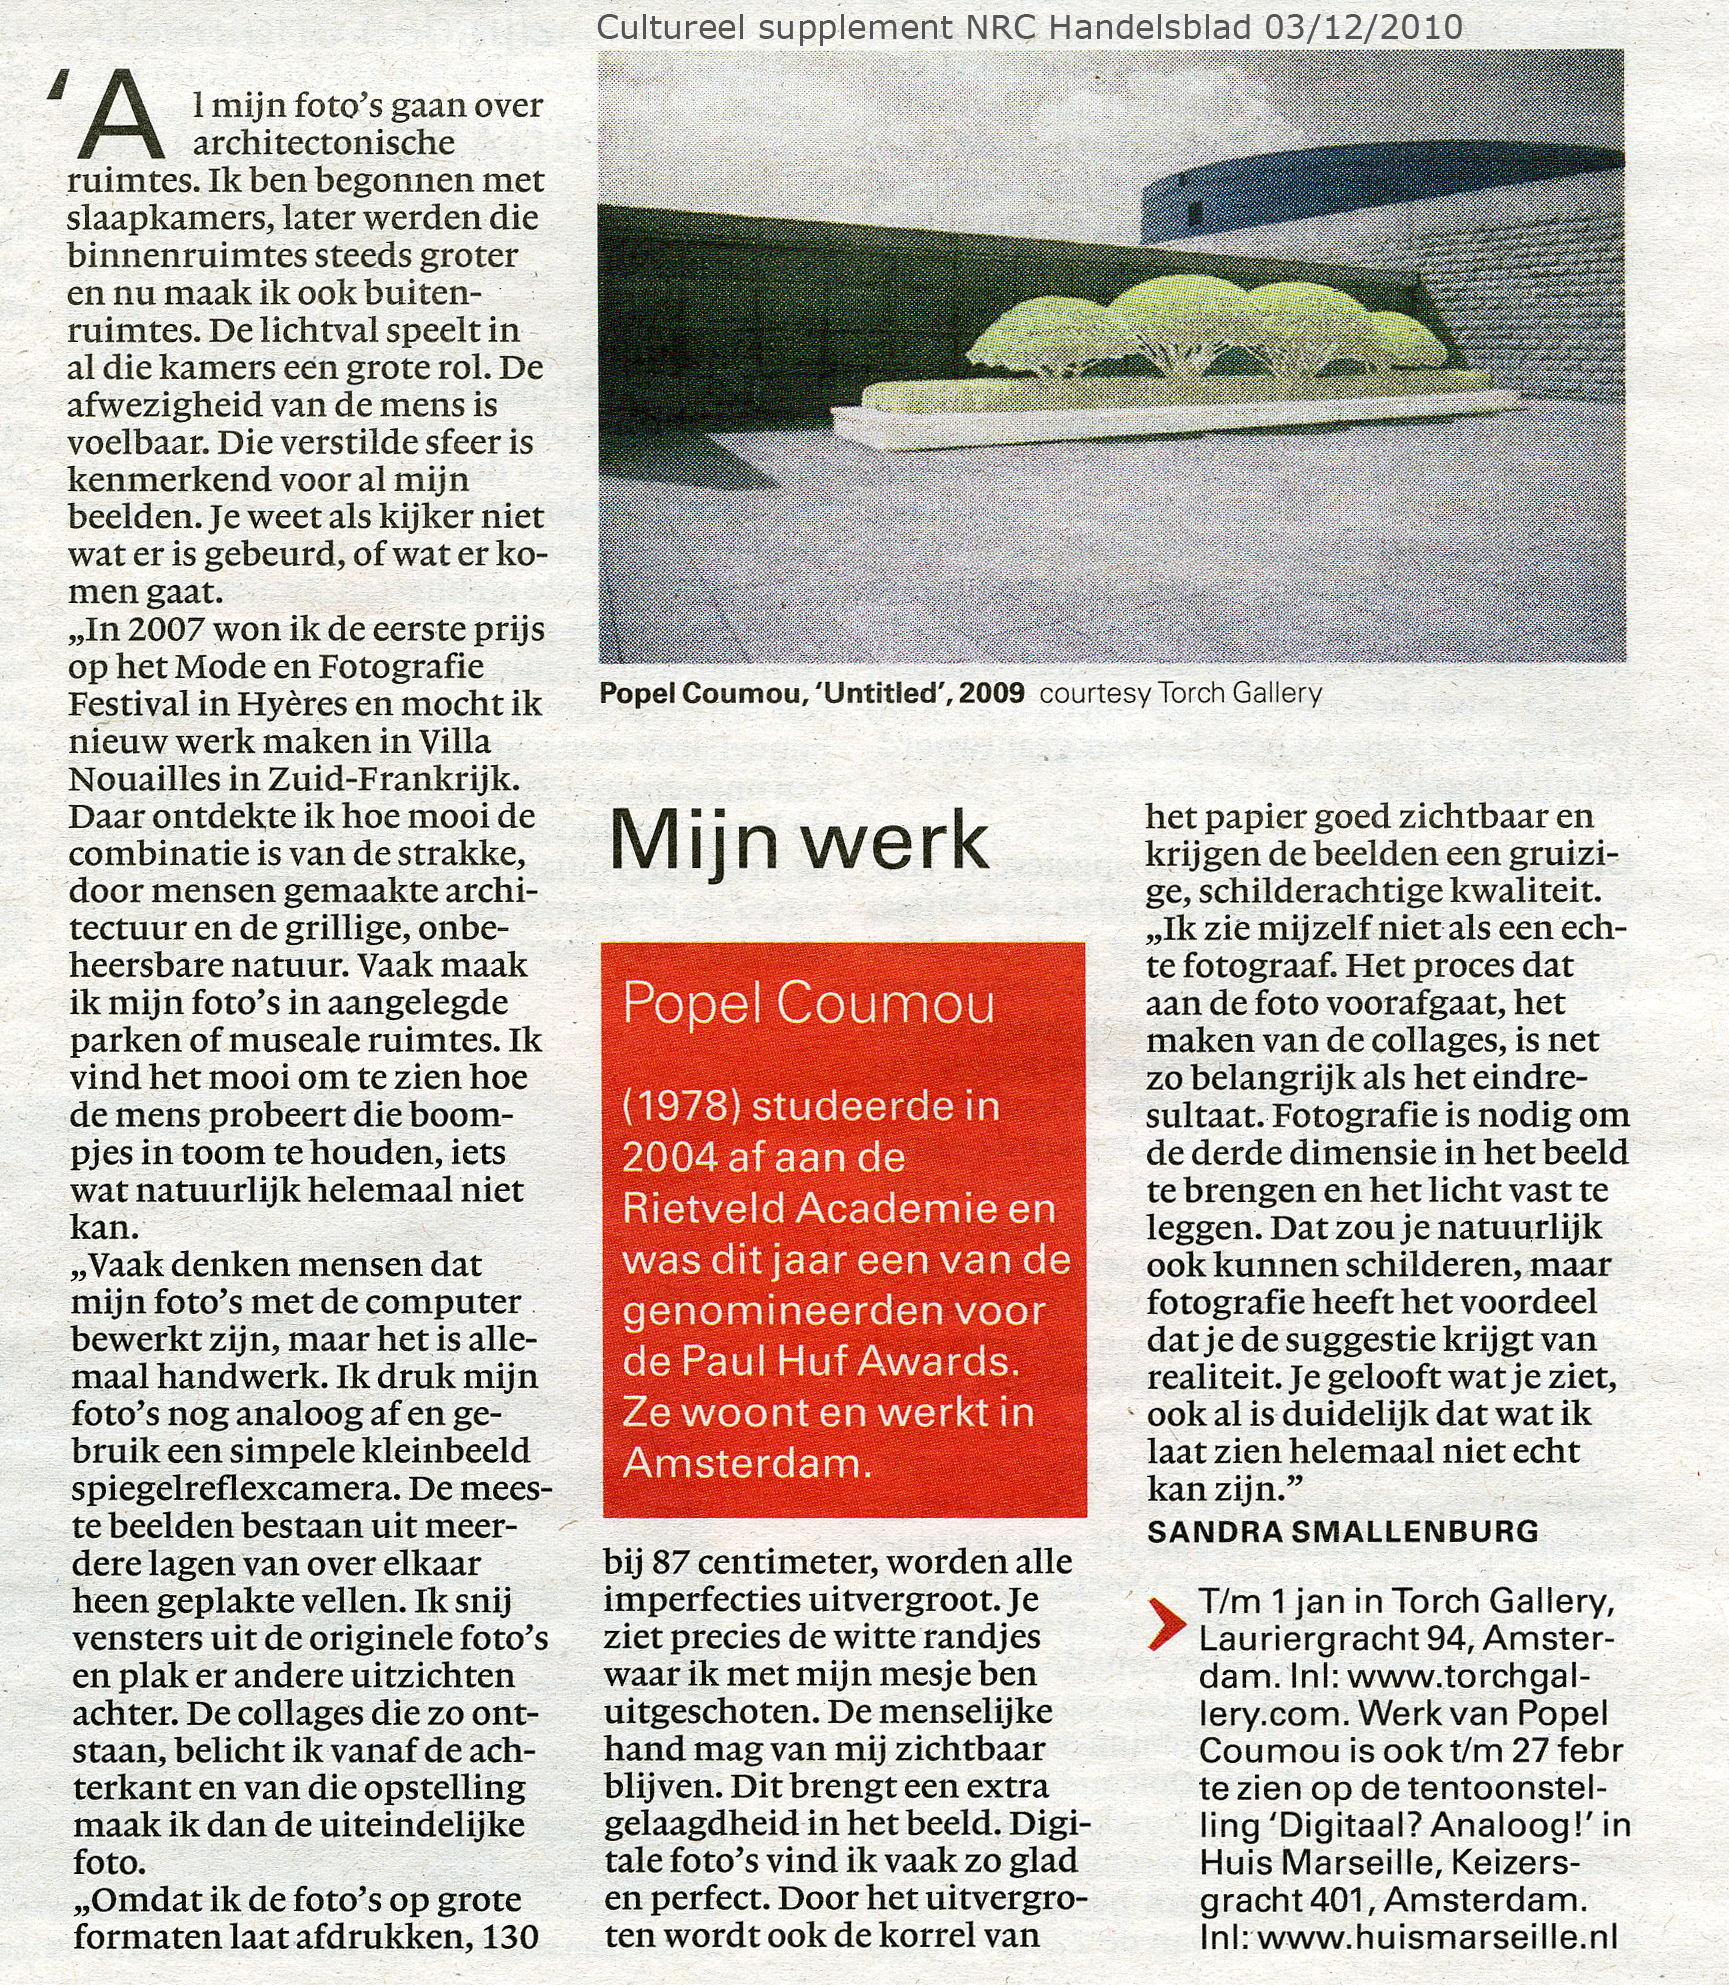 NRC Cultureel Supplement December 3th 2010 About my solo in TORCH Gallery By Sandra Smallenburg